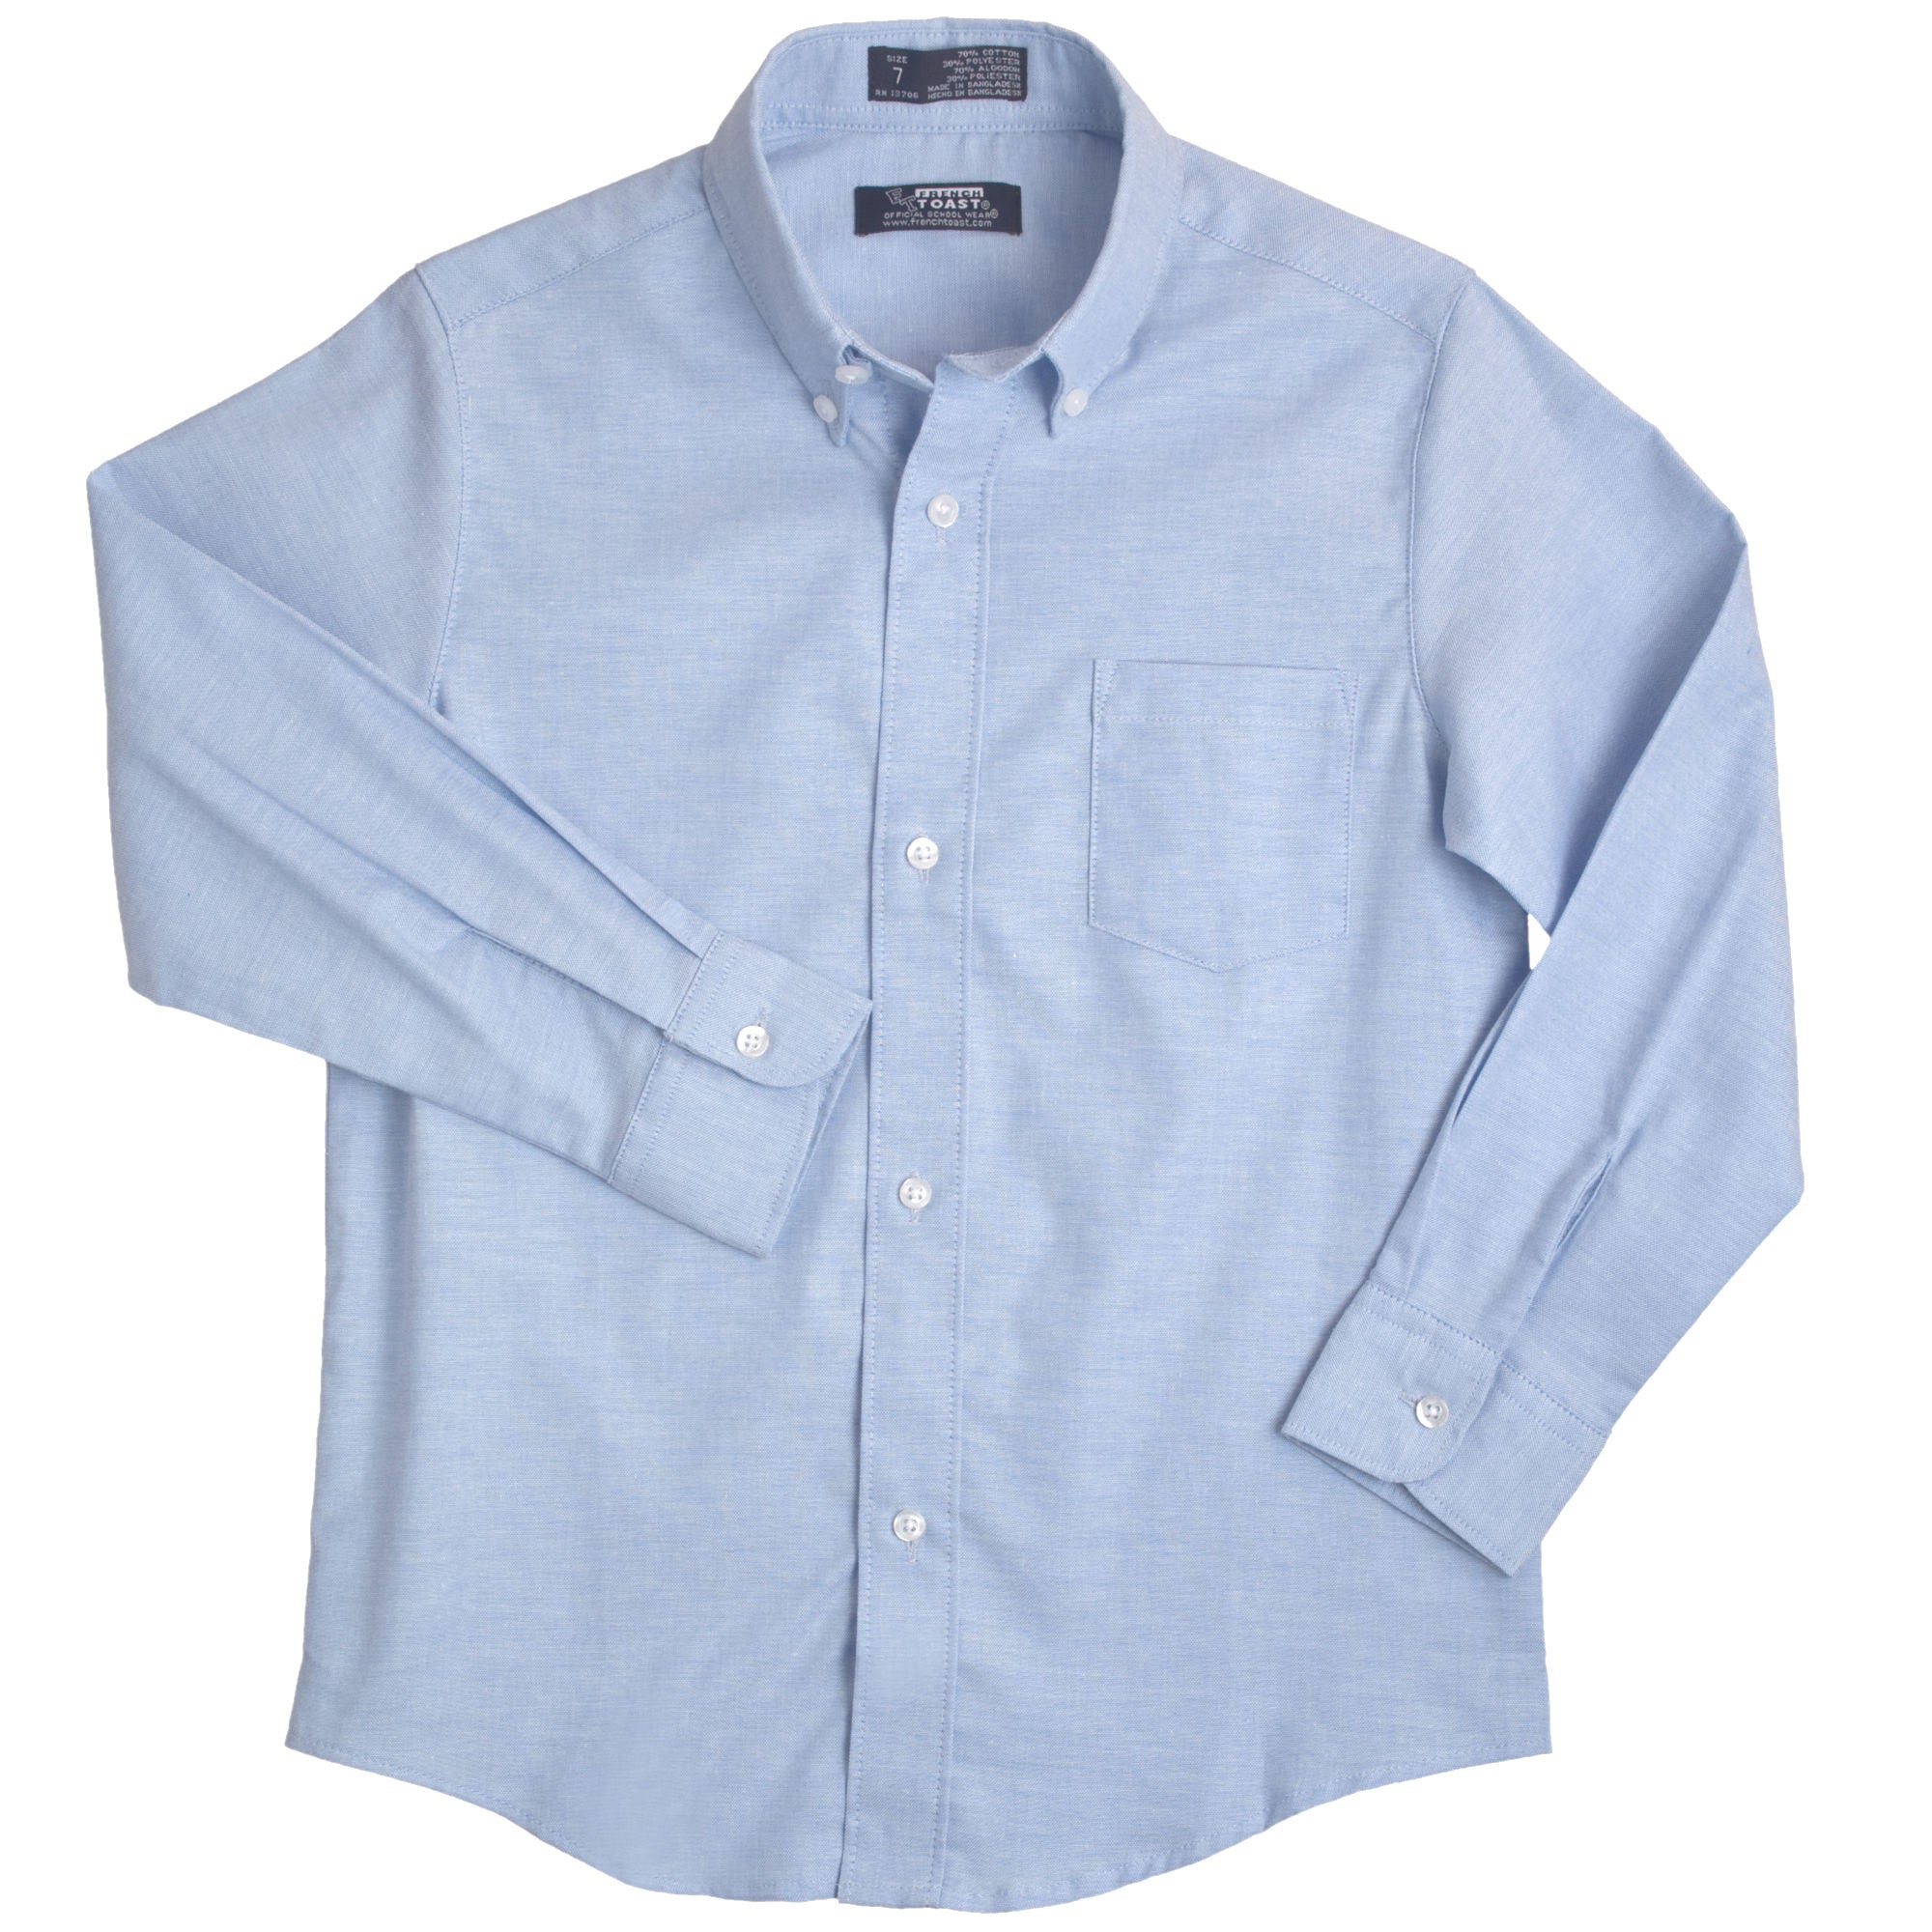 French Toast Boys Long Sleeve Oxford Shirt - Young Timers Boutique  - 1